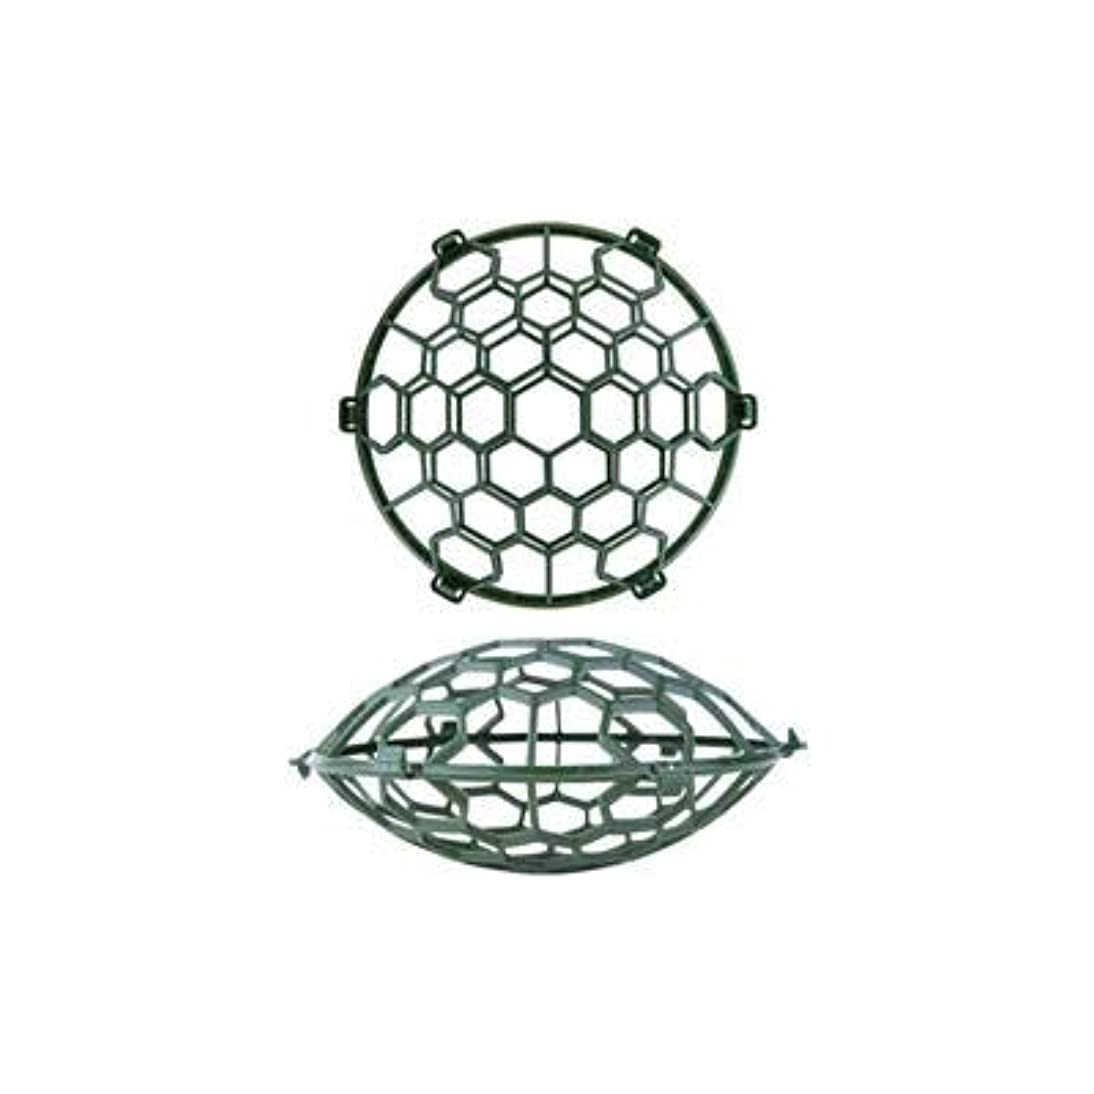 Pillow Floral Cage for Centerpieces and Vases - 6